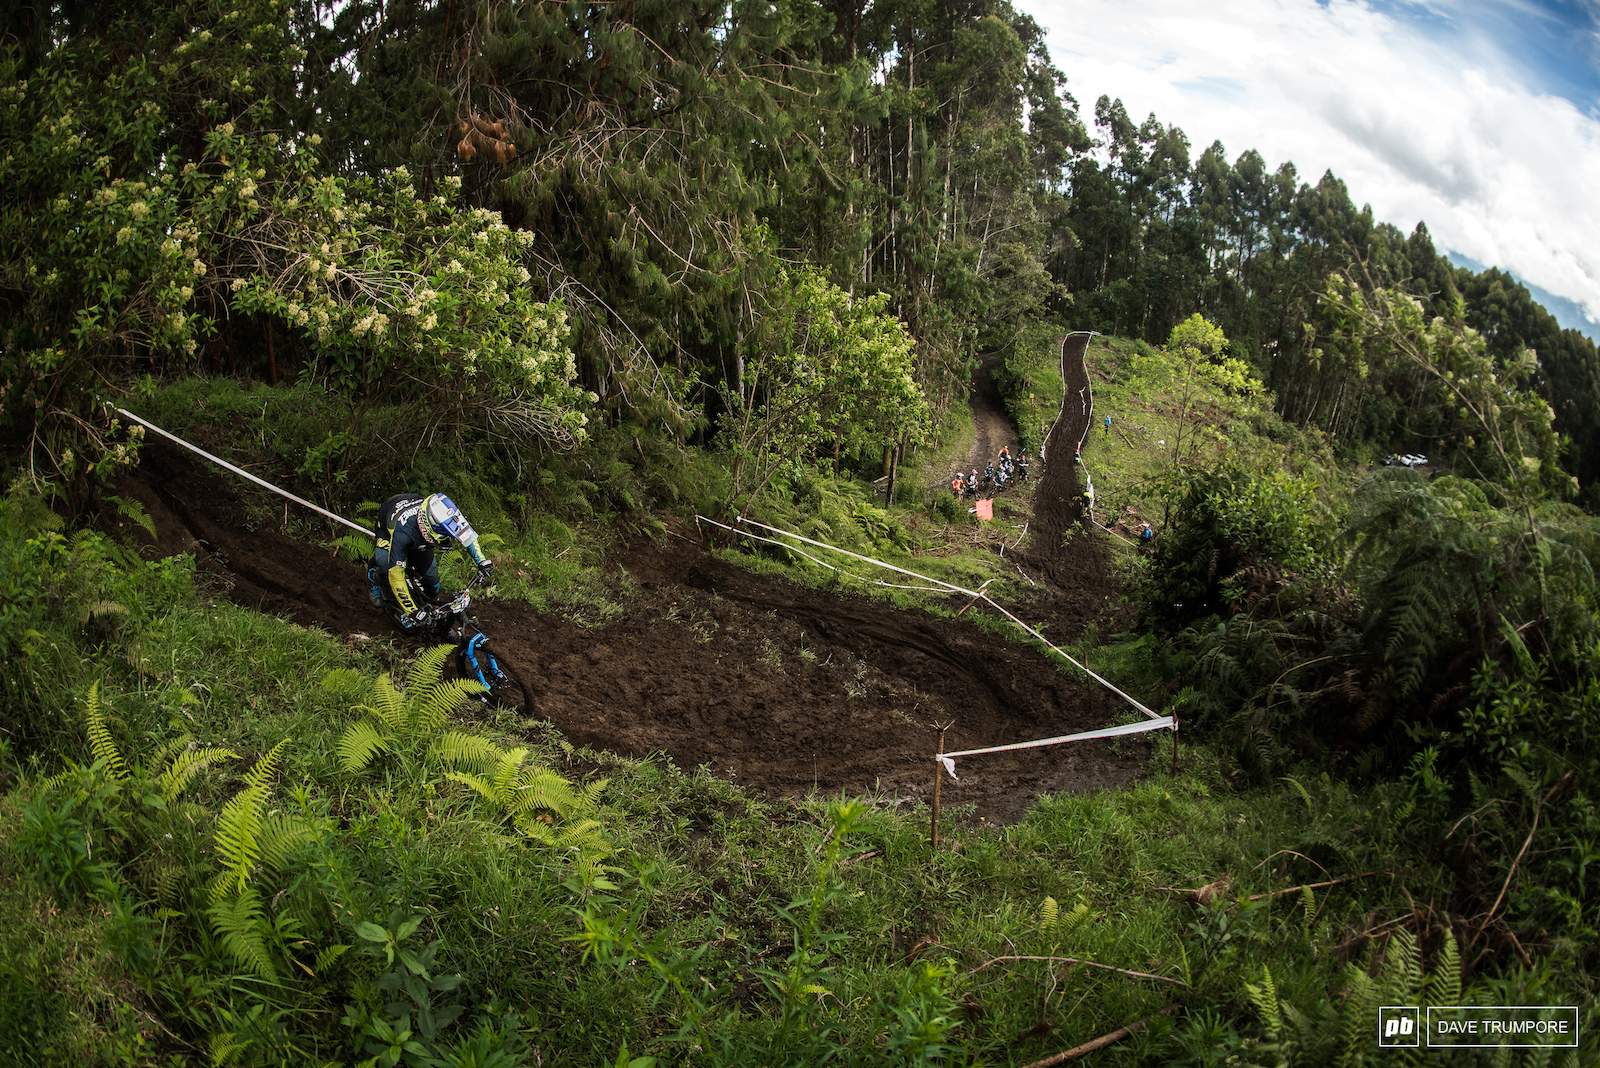 Marcelo Gutierrez backed up his performance on the streets of Manizales with an impressive performance on the muddy hillsides outside of the city. With a 2nd place finish the hometown fans were thrilled to have a Colombian on the EWS podium this weekend.